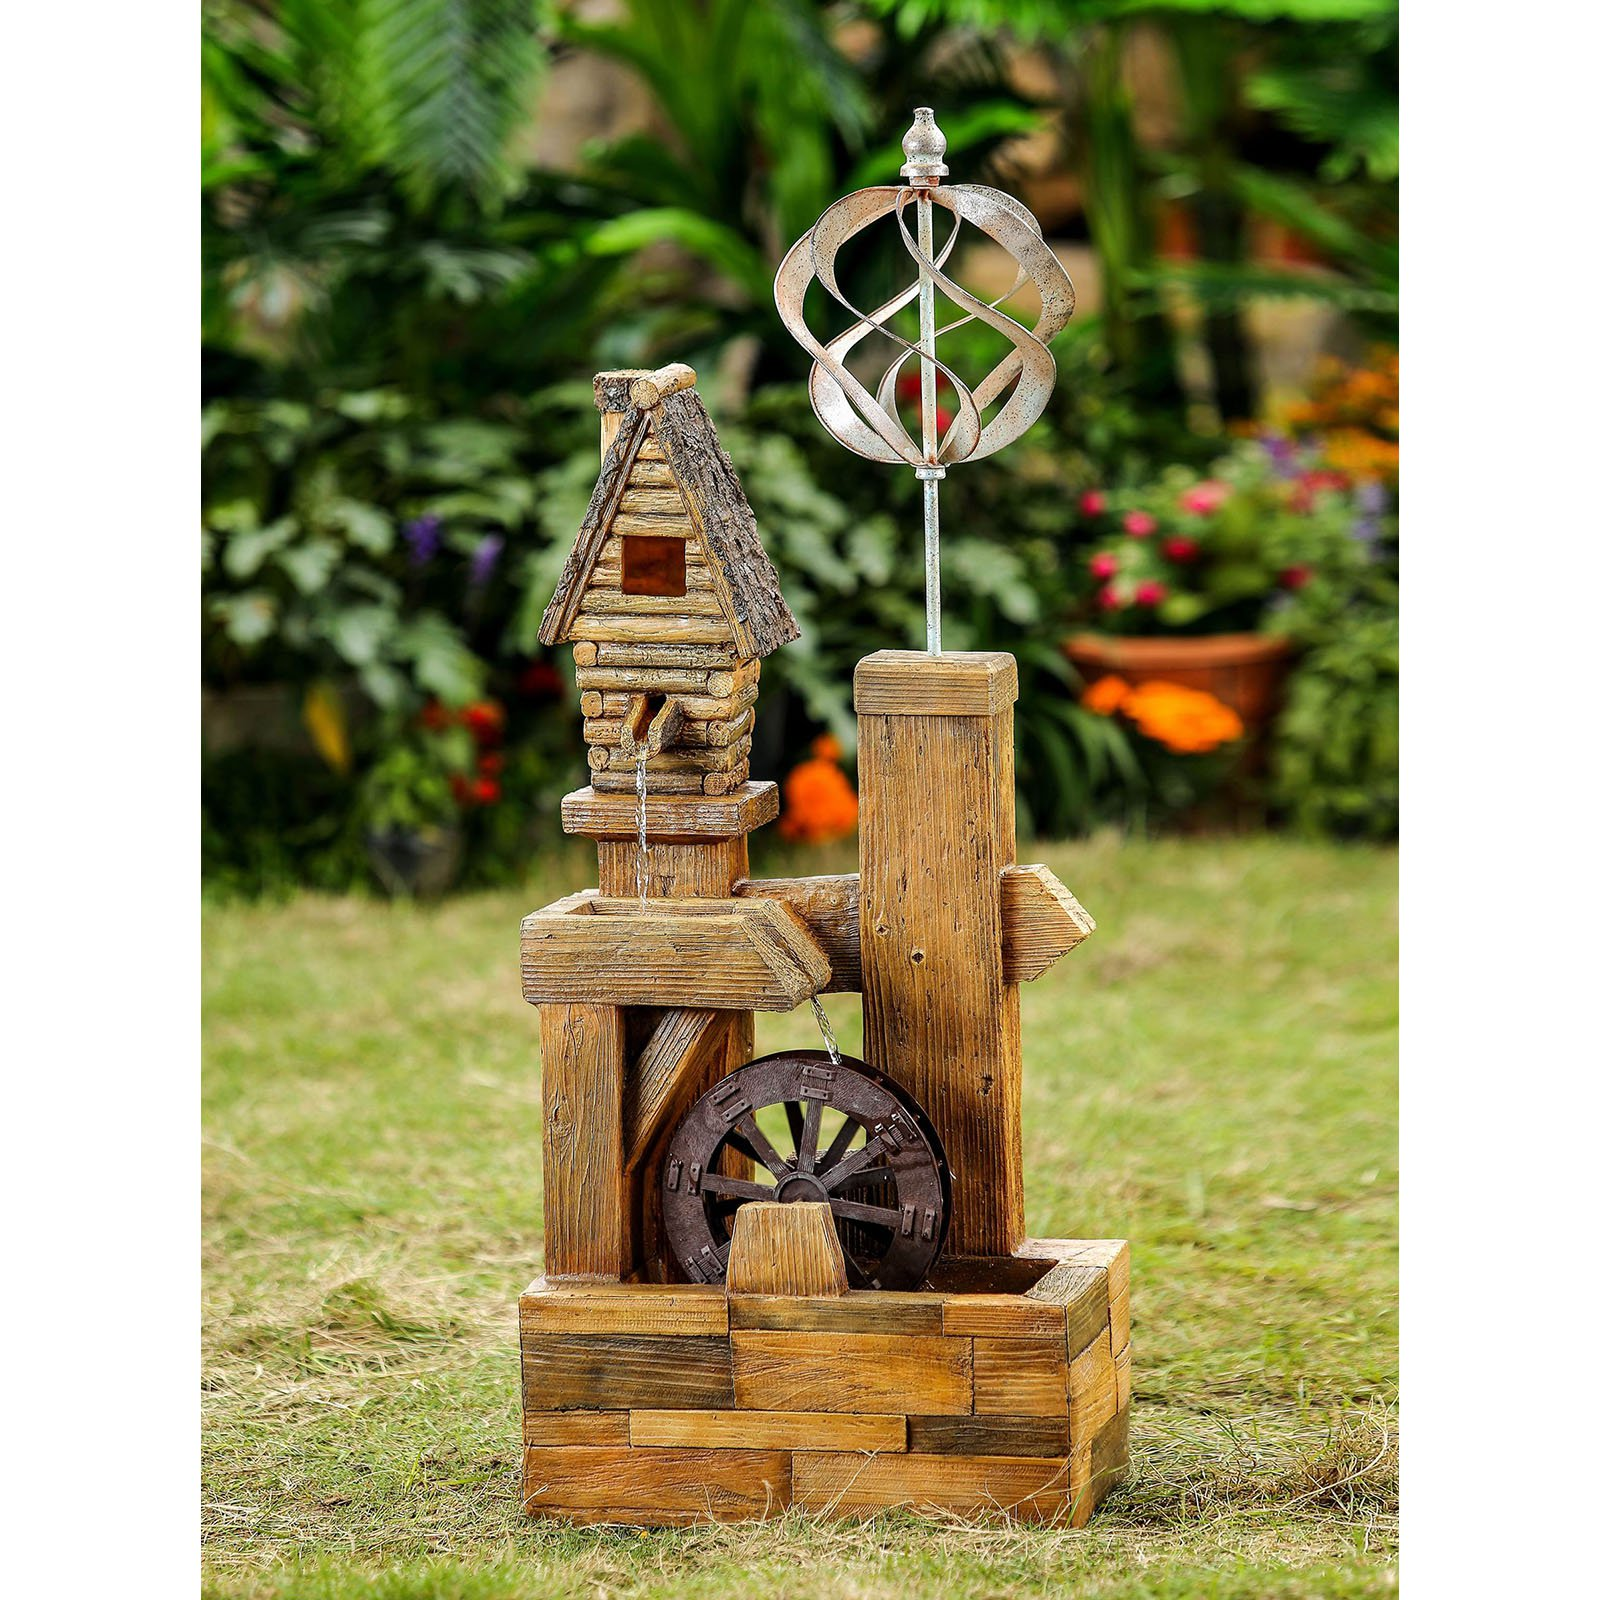 Jeco Wood Look Birdhouse with Wind Spinner by Wind Spinners